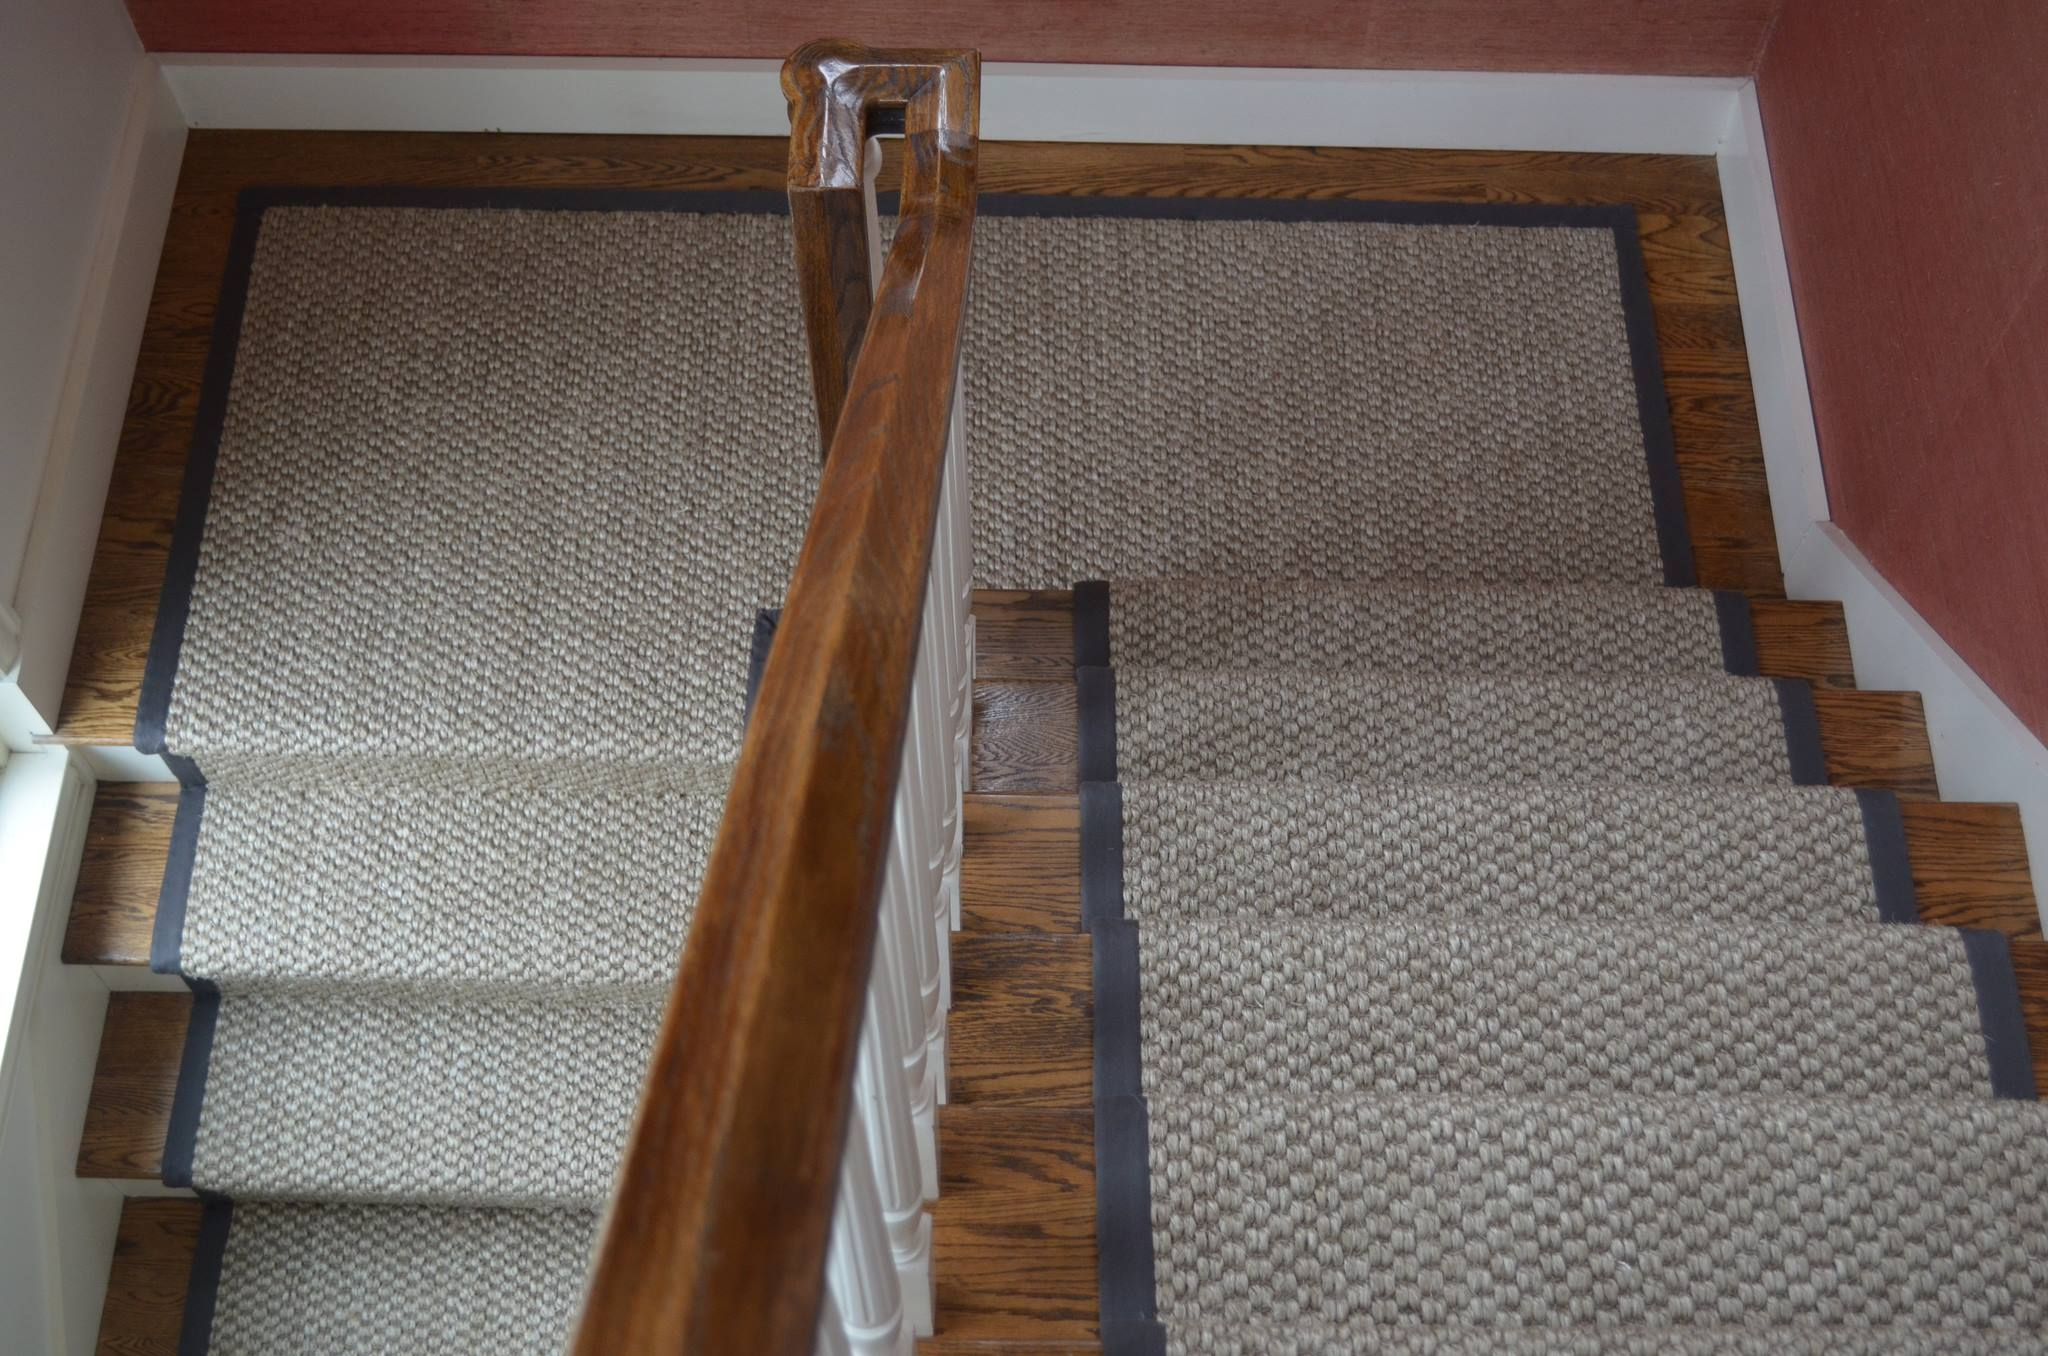 Furniture Rug Outstanding Sisal Rug For Floor Covering Ideas Throughout Sisal Stair Tread Rugs (Image 7 of 15)